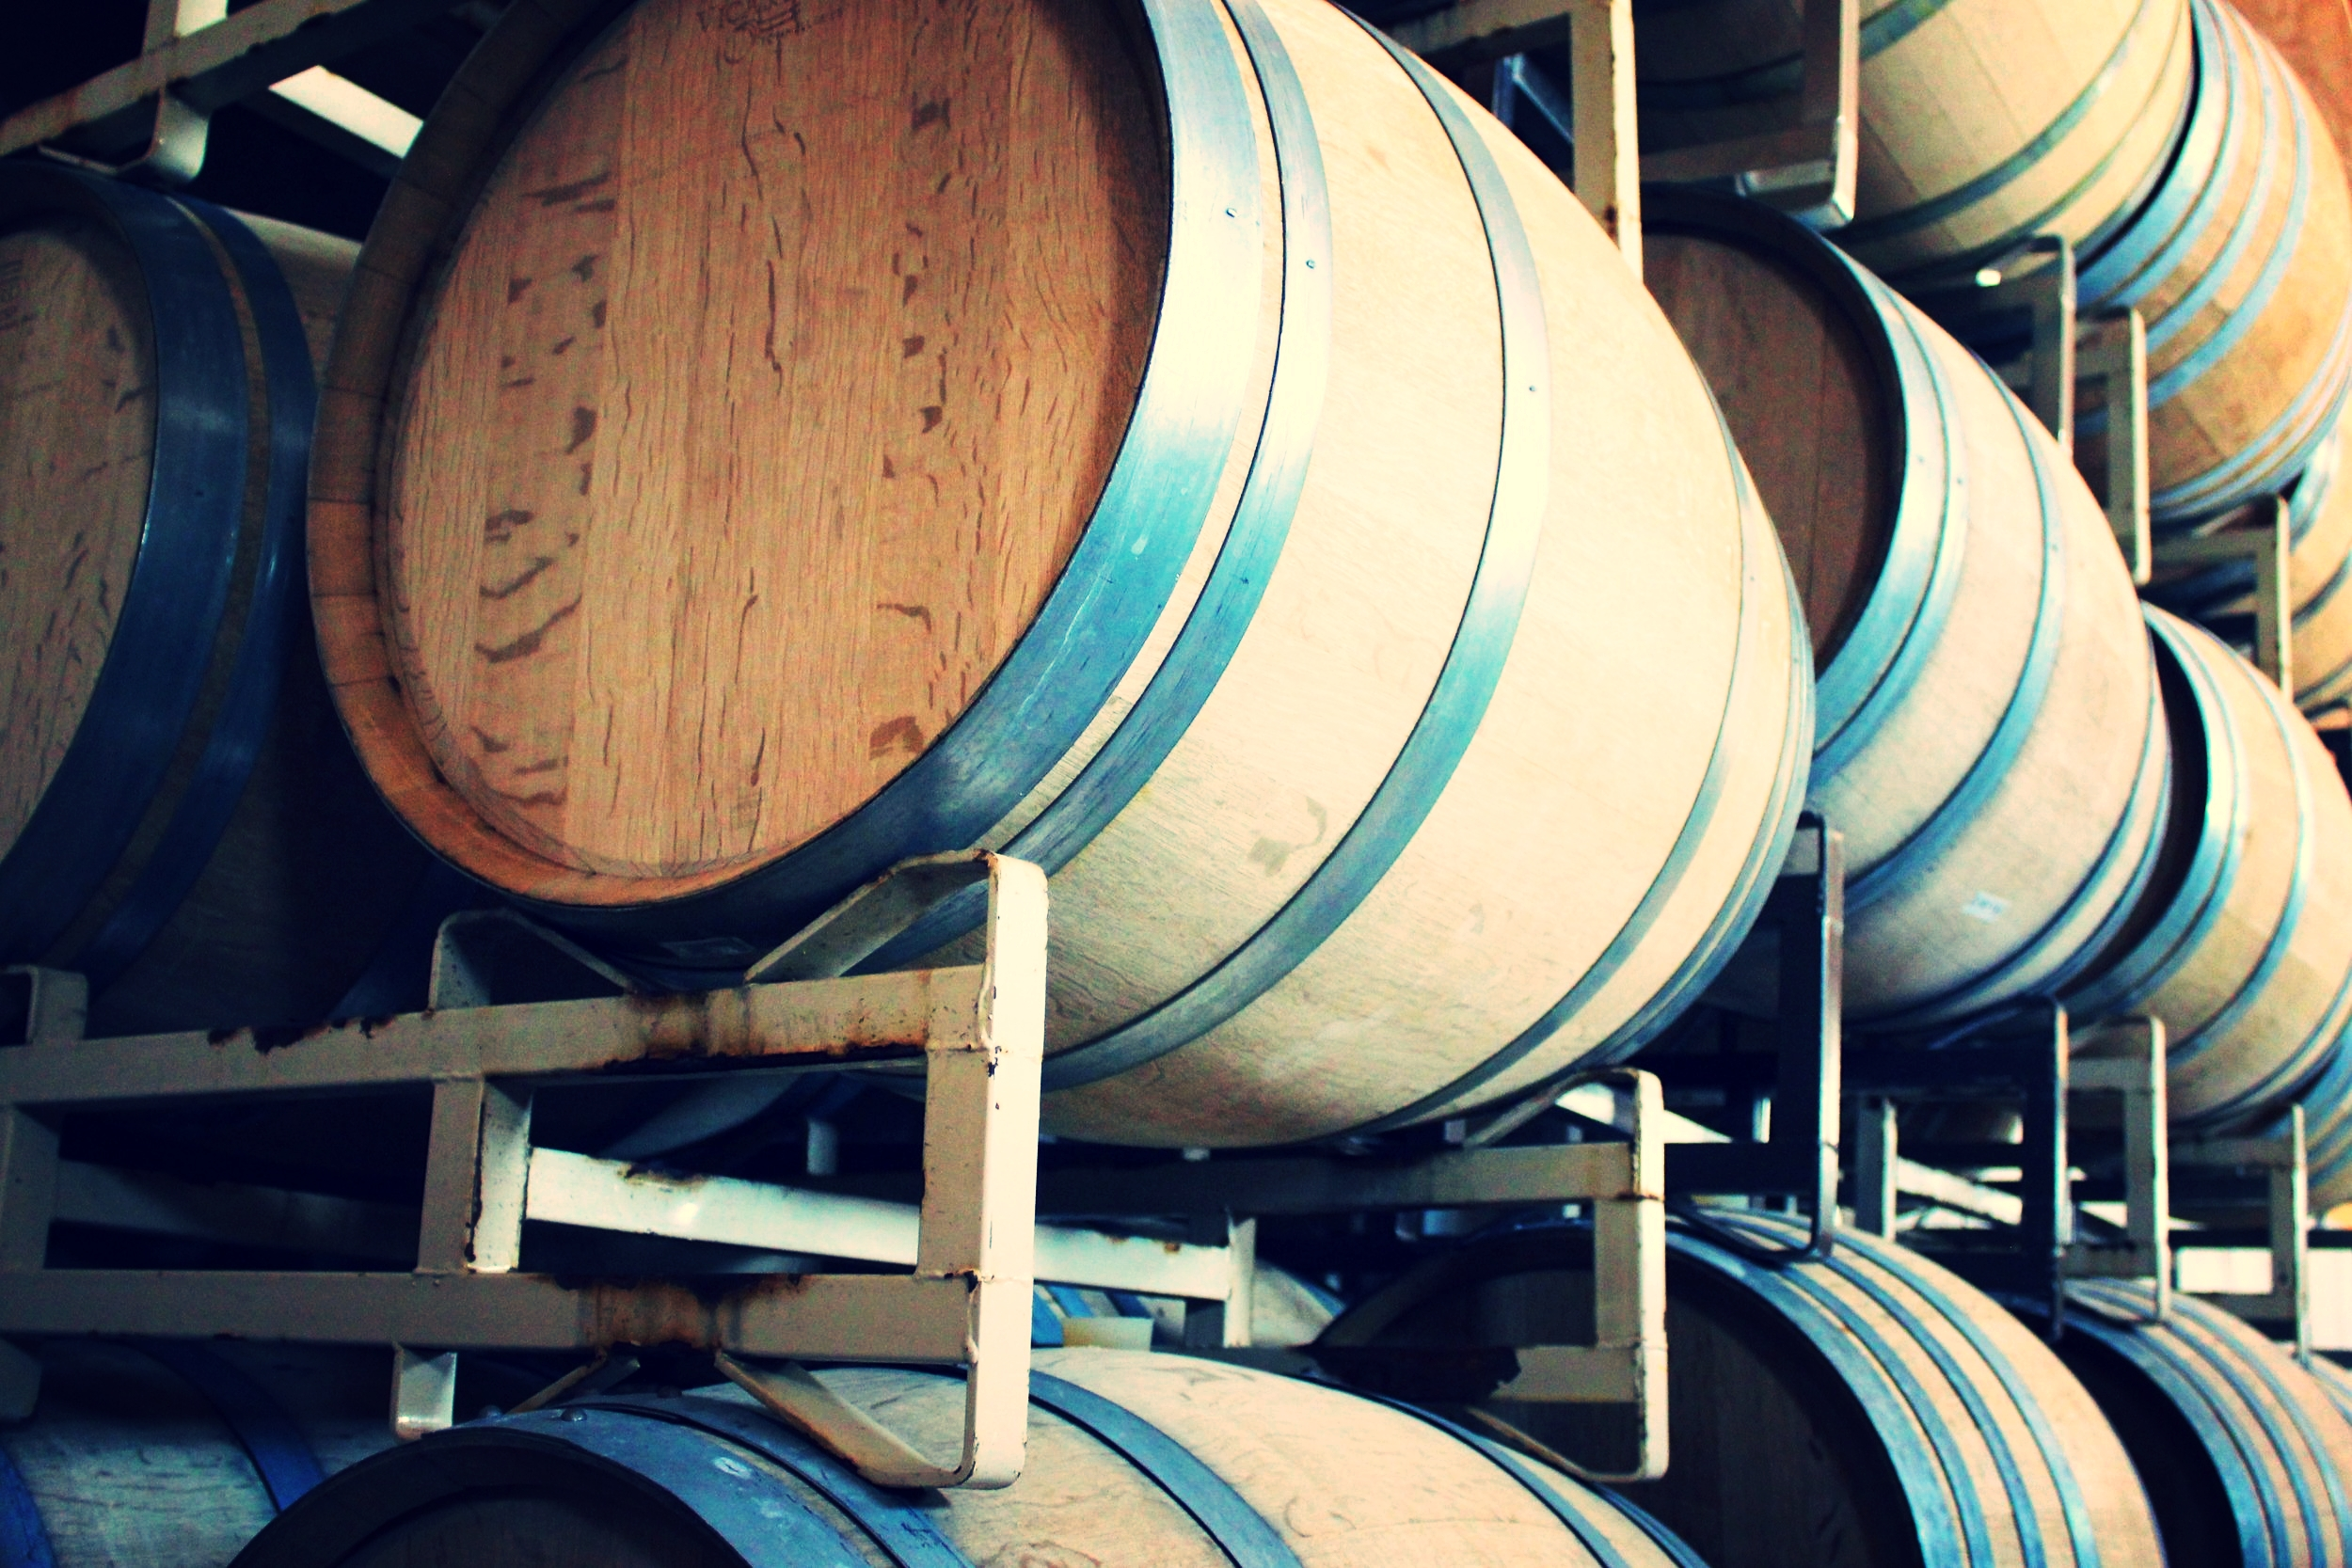 The Barrel room at Penns Woods.